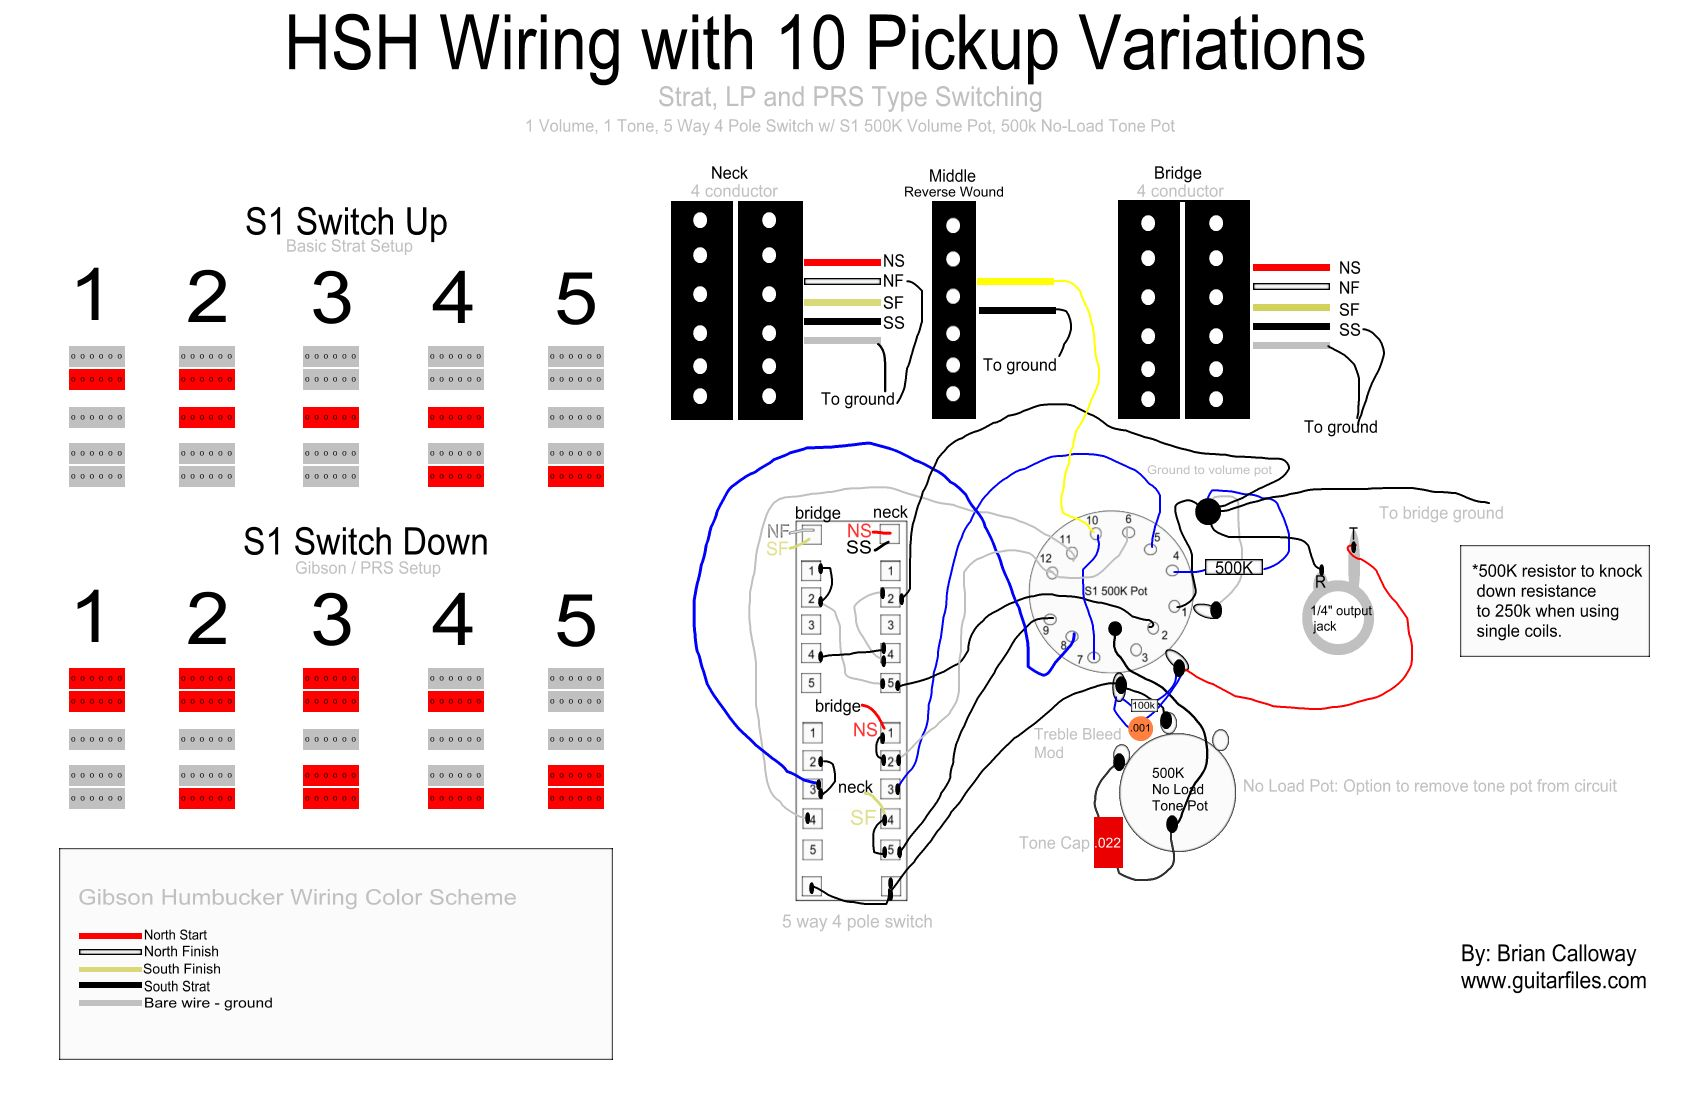 HSH Guitar Wiring - 10 Pickup Combinations. 4 Pole Switch and S1 switching  system. Diagram by Brian Calloway